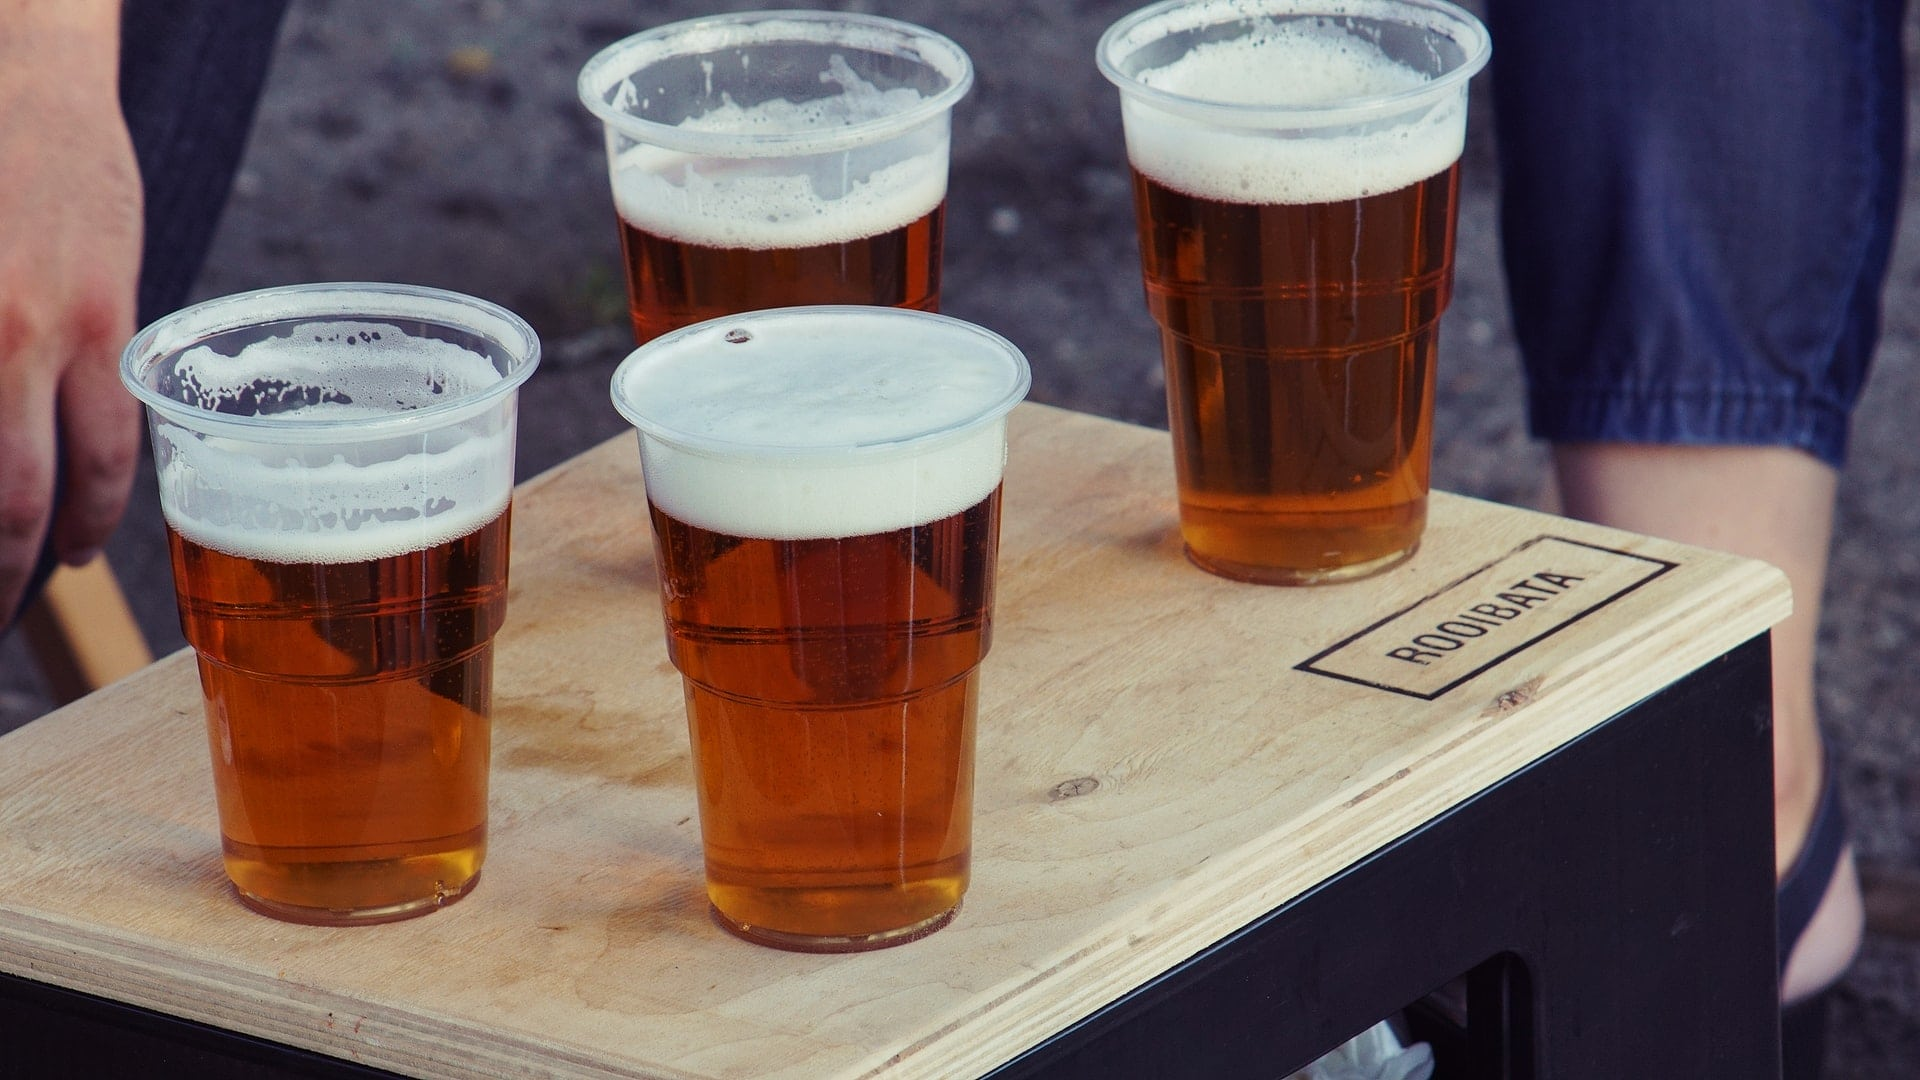 Four cups of beer on a table